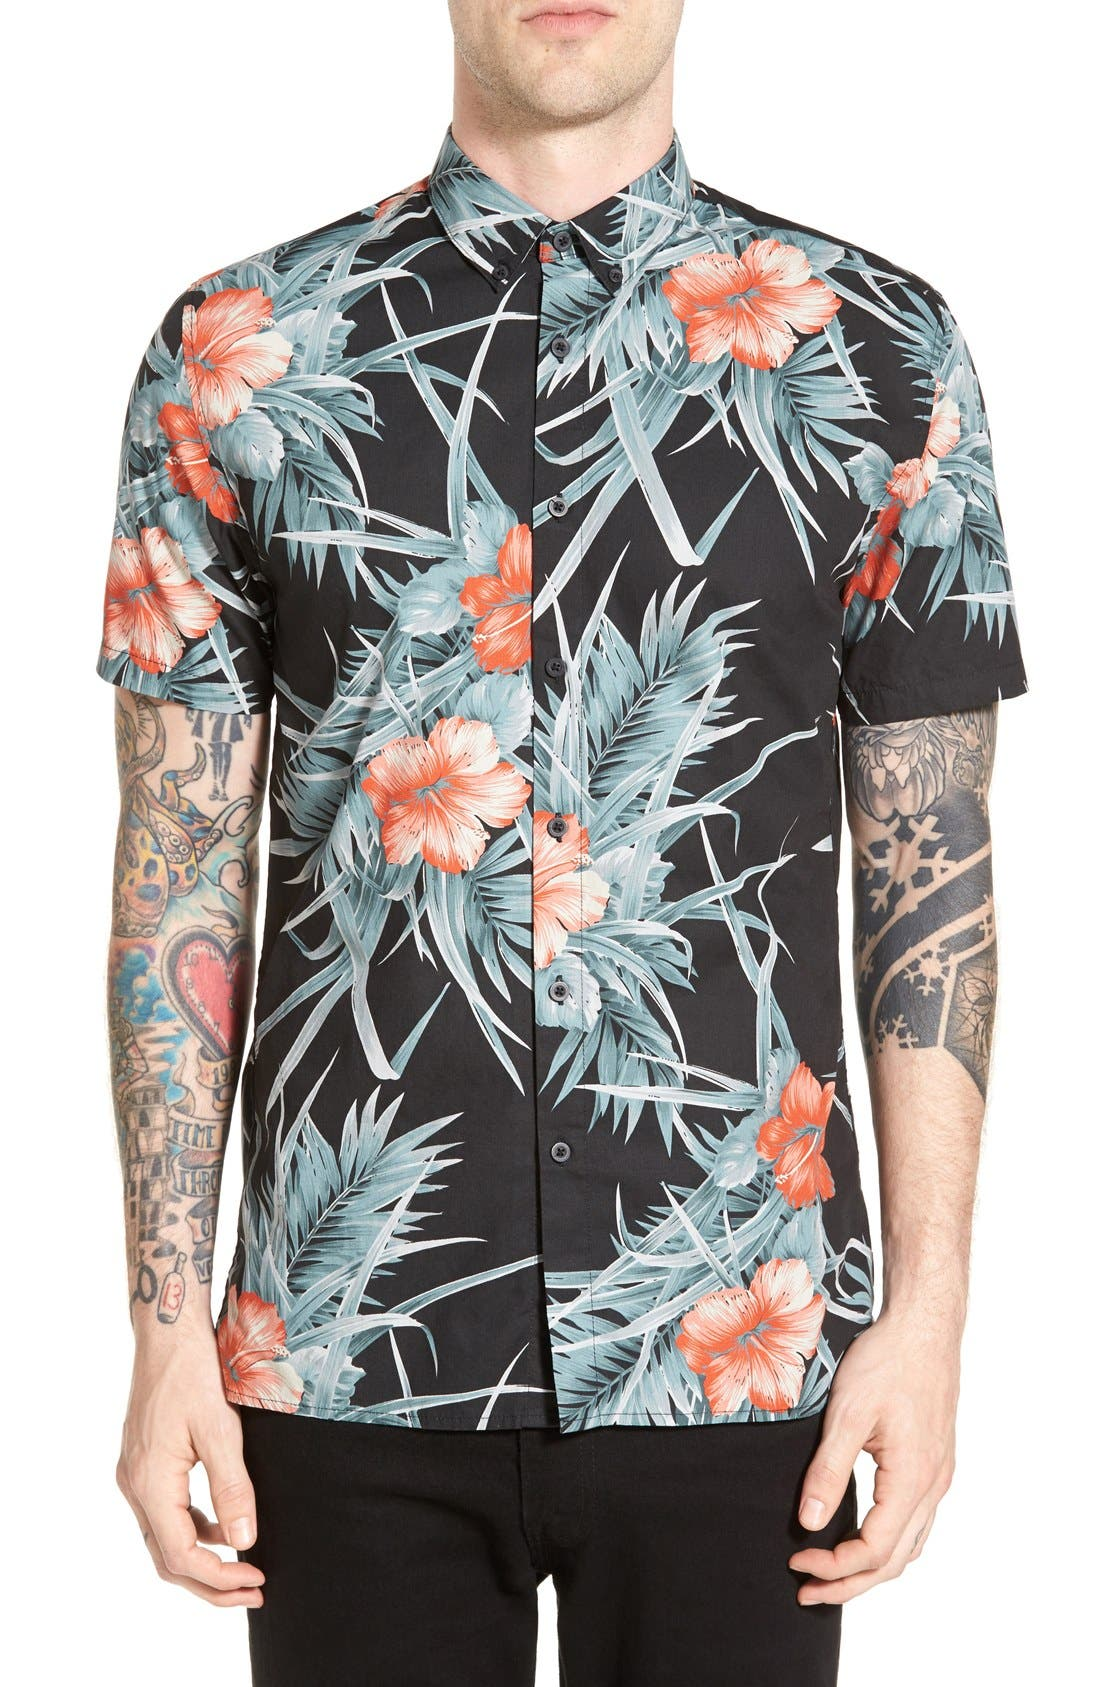 Main Image - Barney Cools Trim Fit Floral Print Woven Shirt